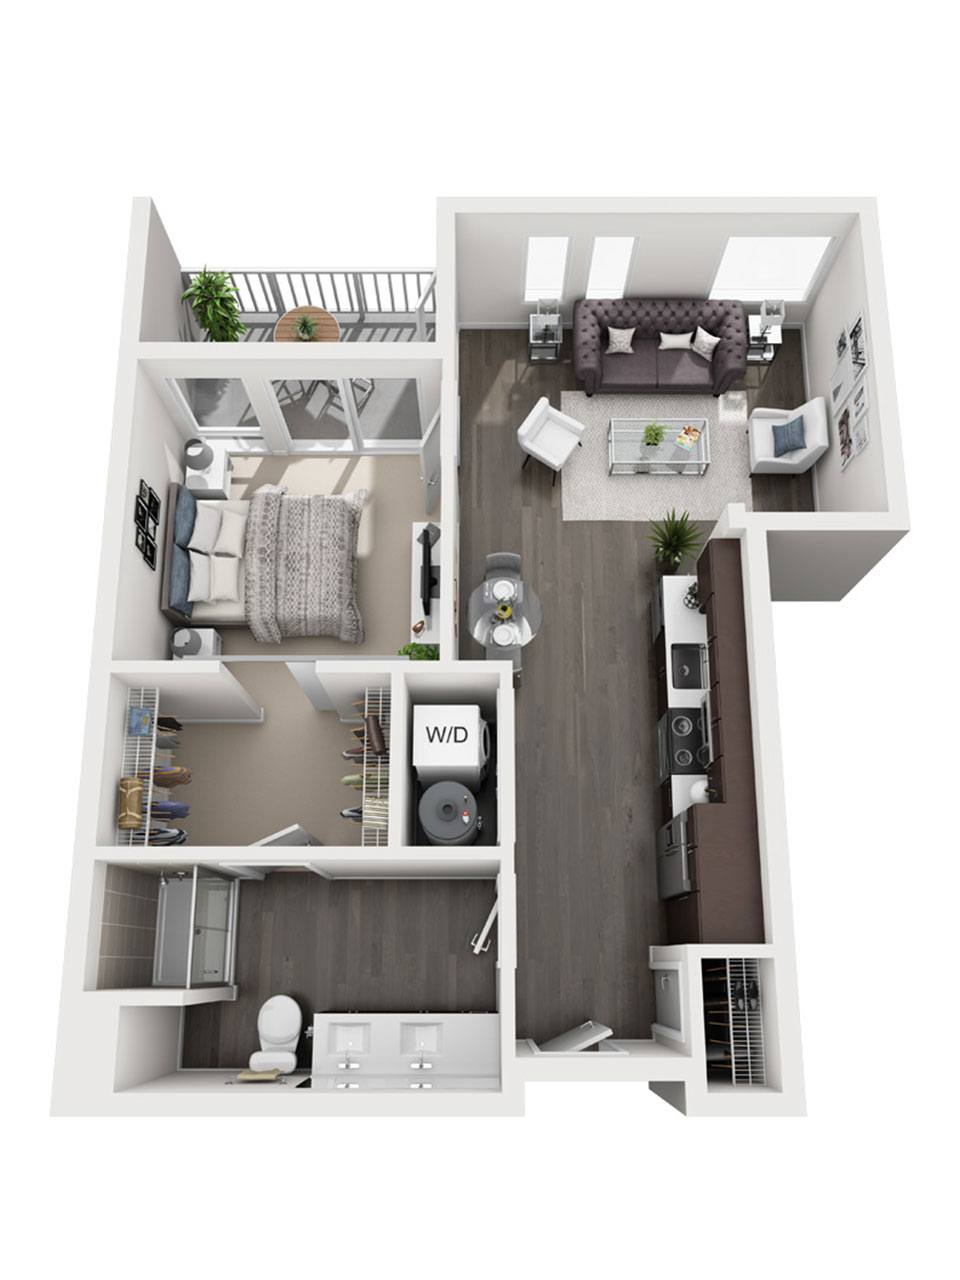 Plan 1 Bedroom – A6 | 1 Bath